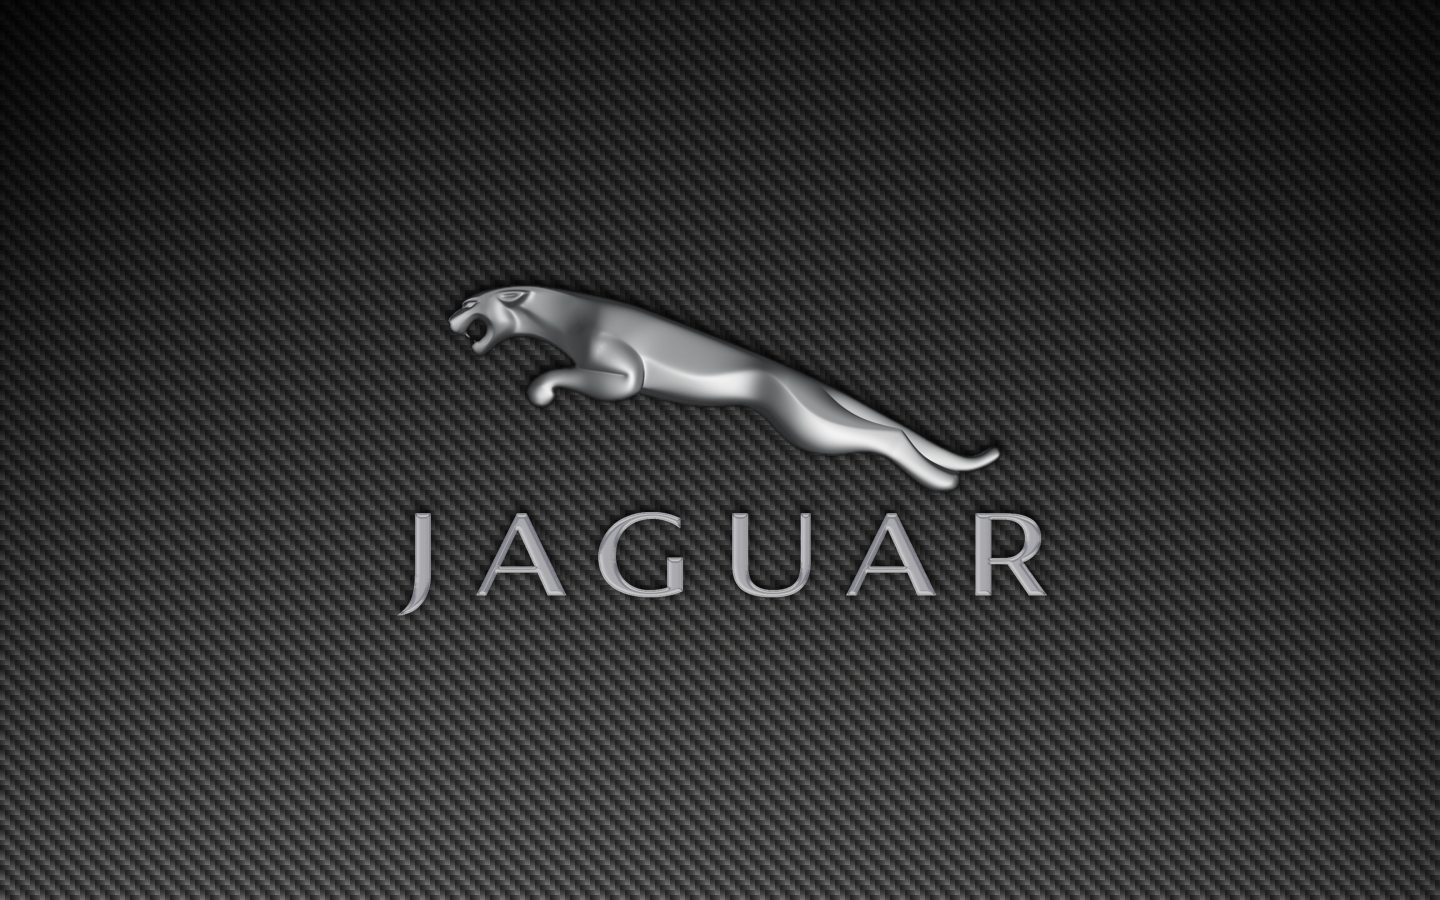 Jaguar Logo HD Widescreen Wallpaper